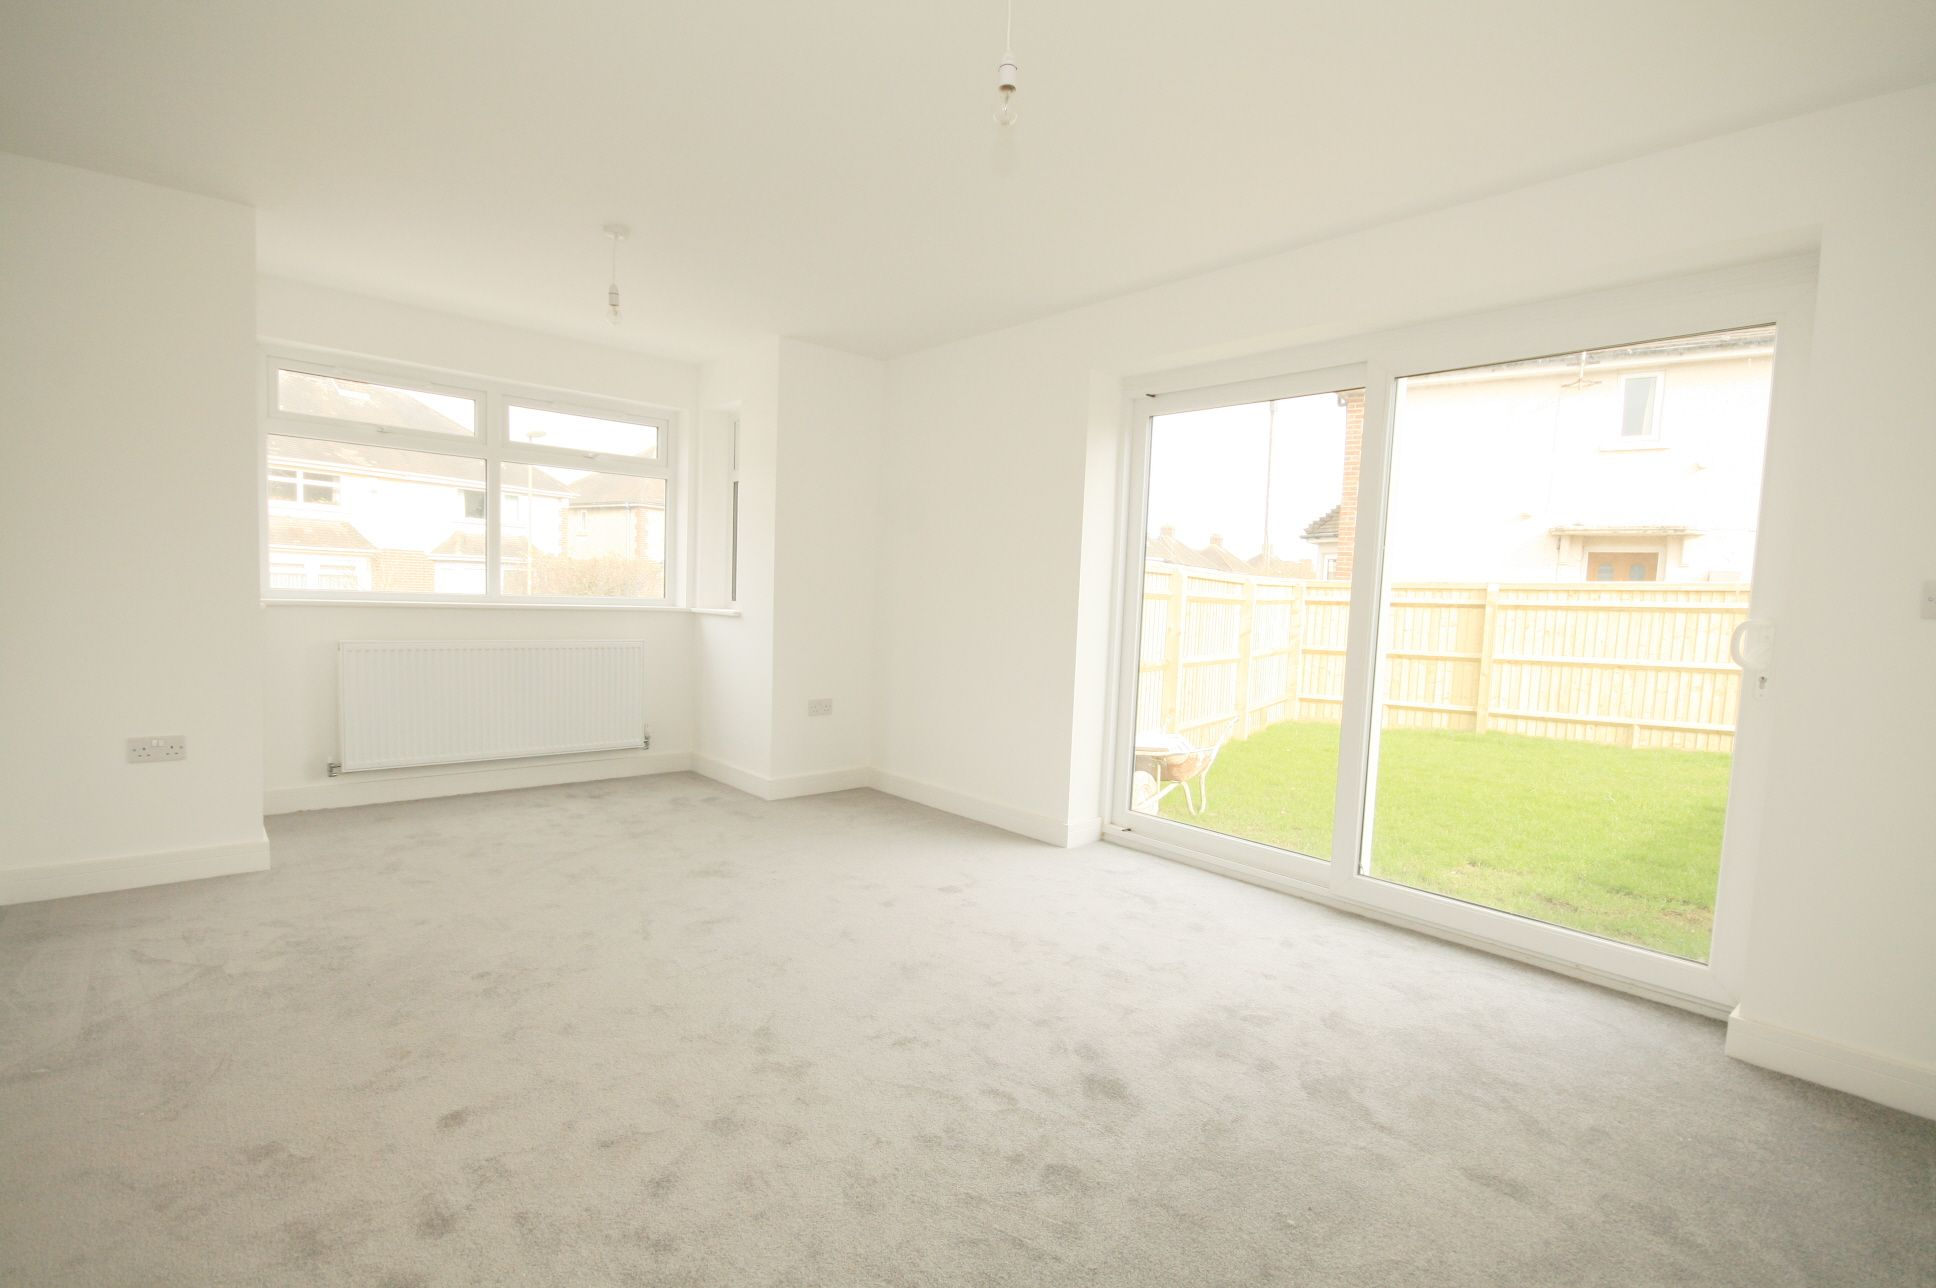 2 Bedroom Detached House For Sale - Photograph 4